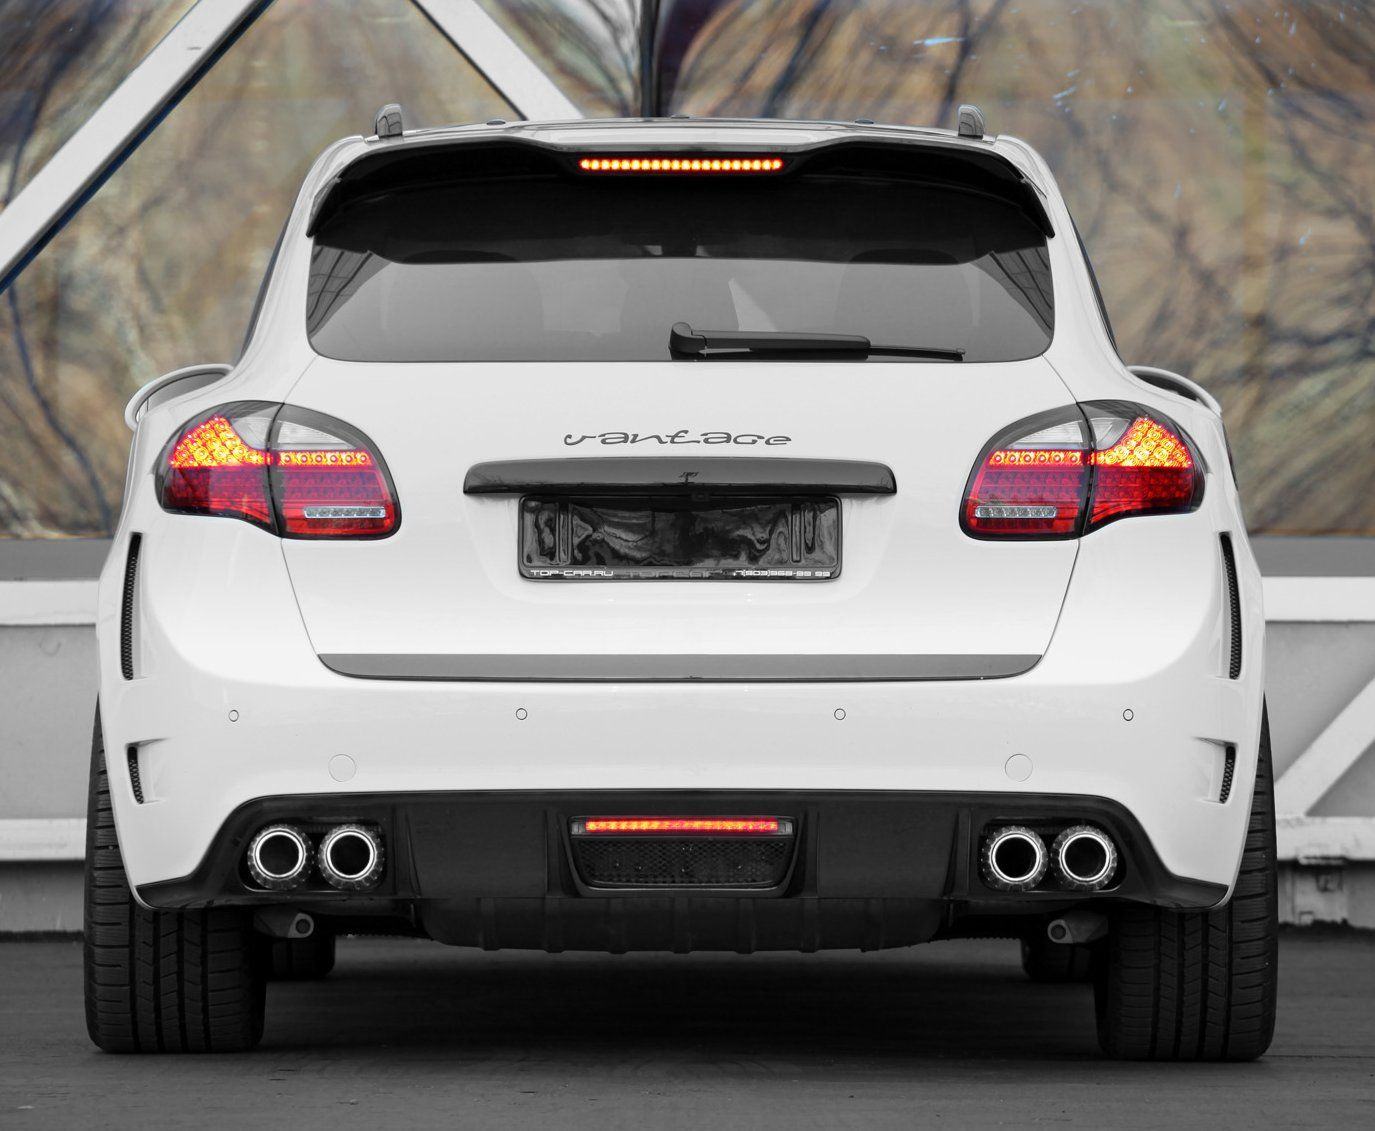 Steve White Vw >> Porsche Cayenne Vantage GTR2 by TopCar | Only cars and cars